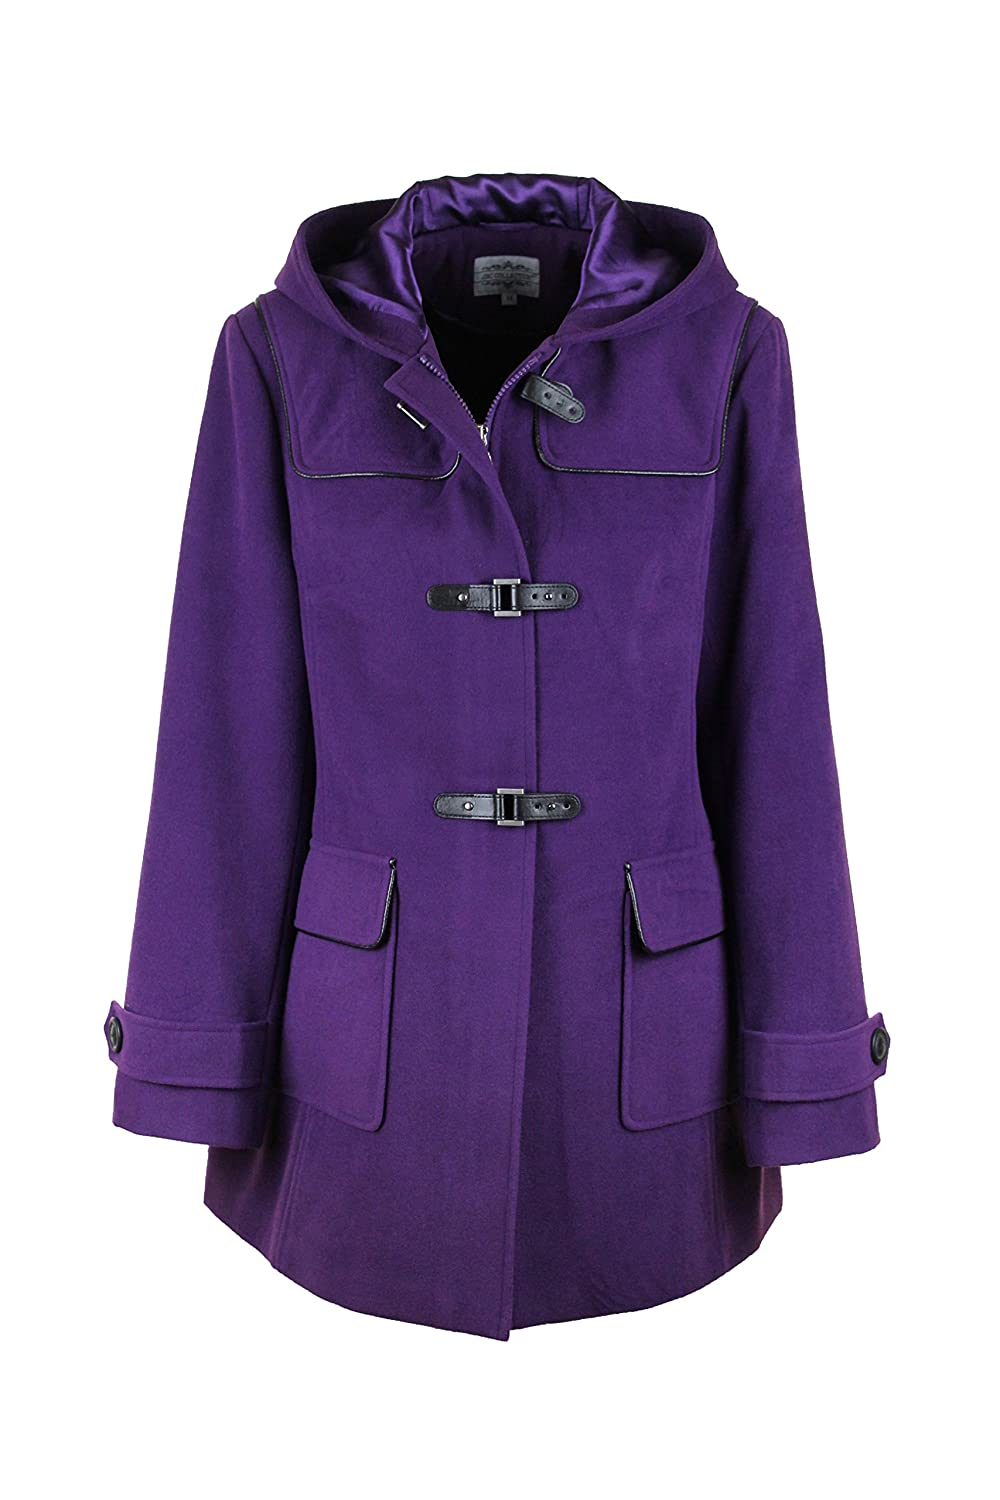 Ladies Womens Duffle Wool Coat Winter Hooded Toggle Jacket Plus